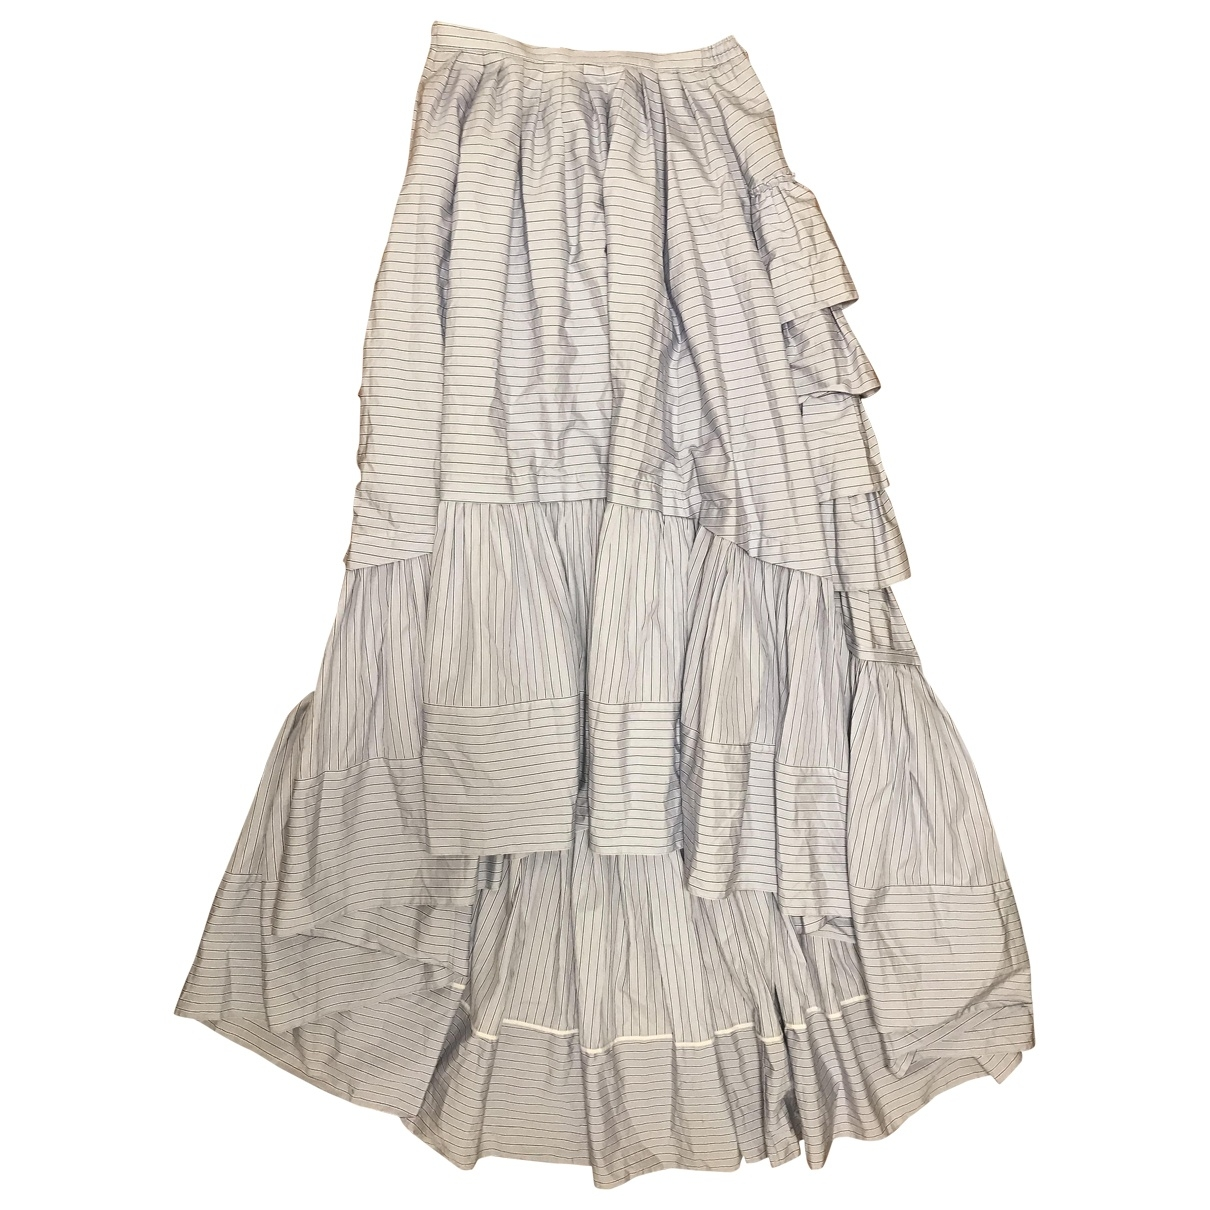 Erdem \N Blue Cotton skirt for Women 8 UK